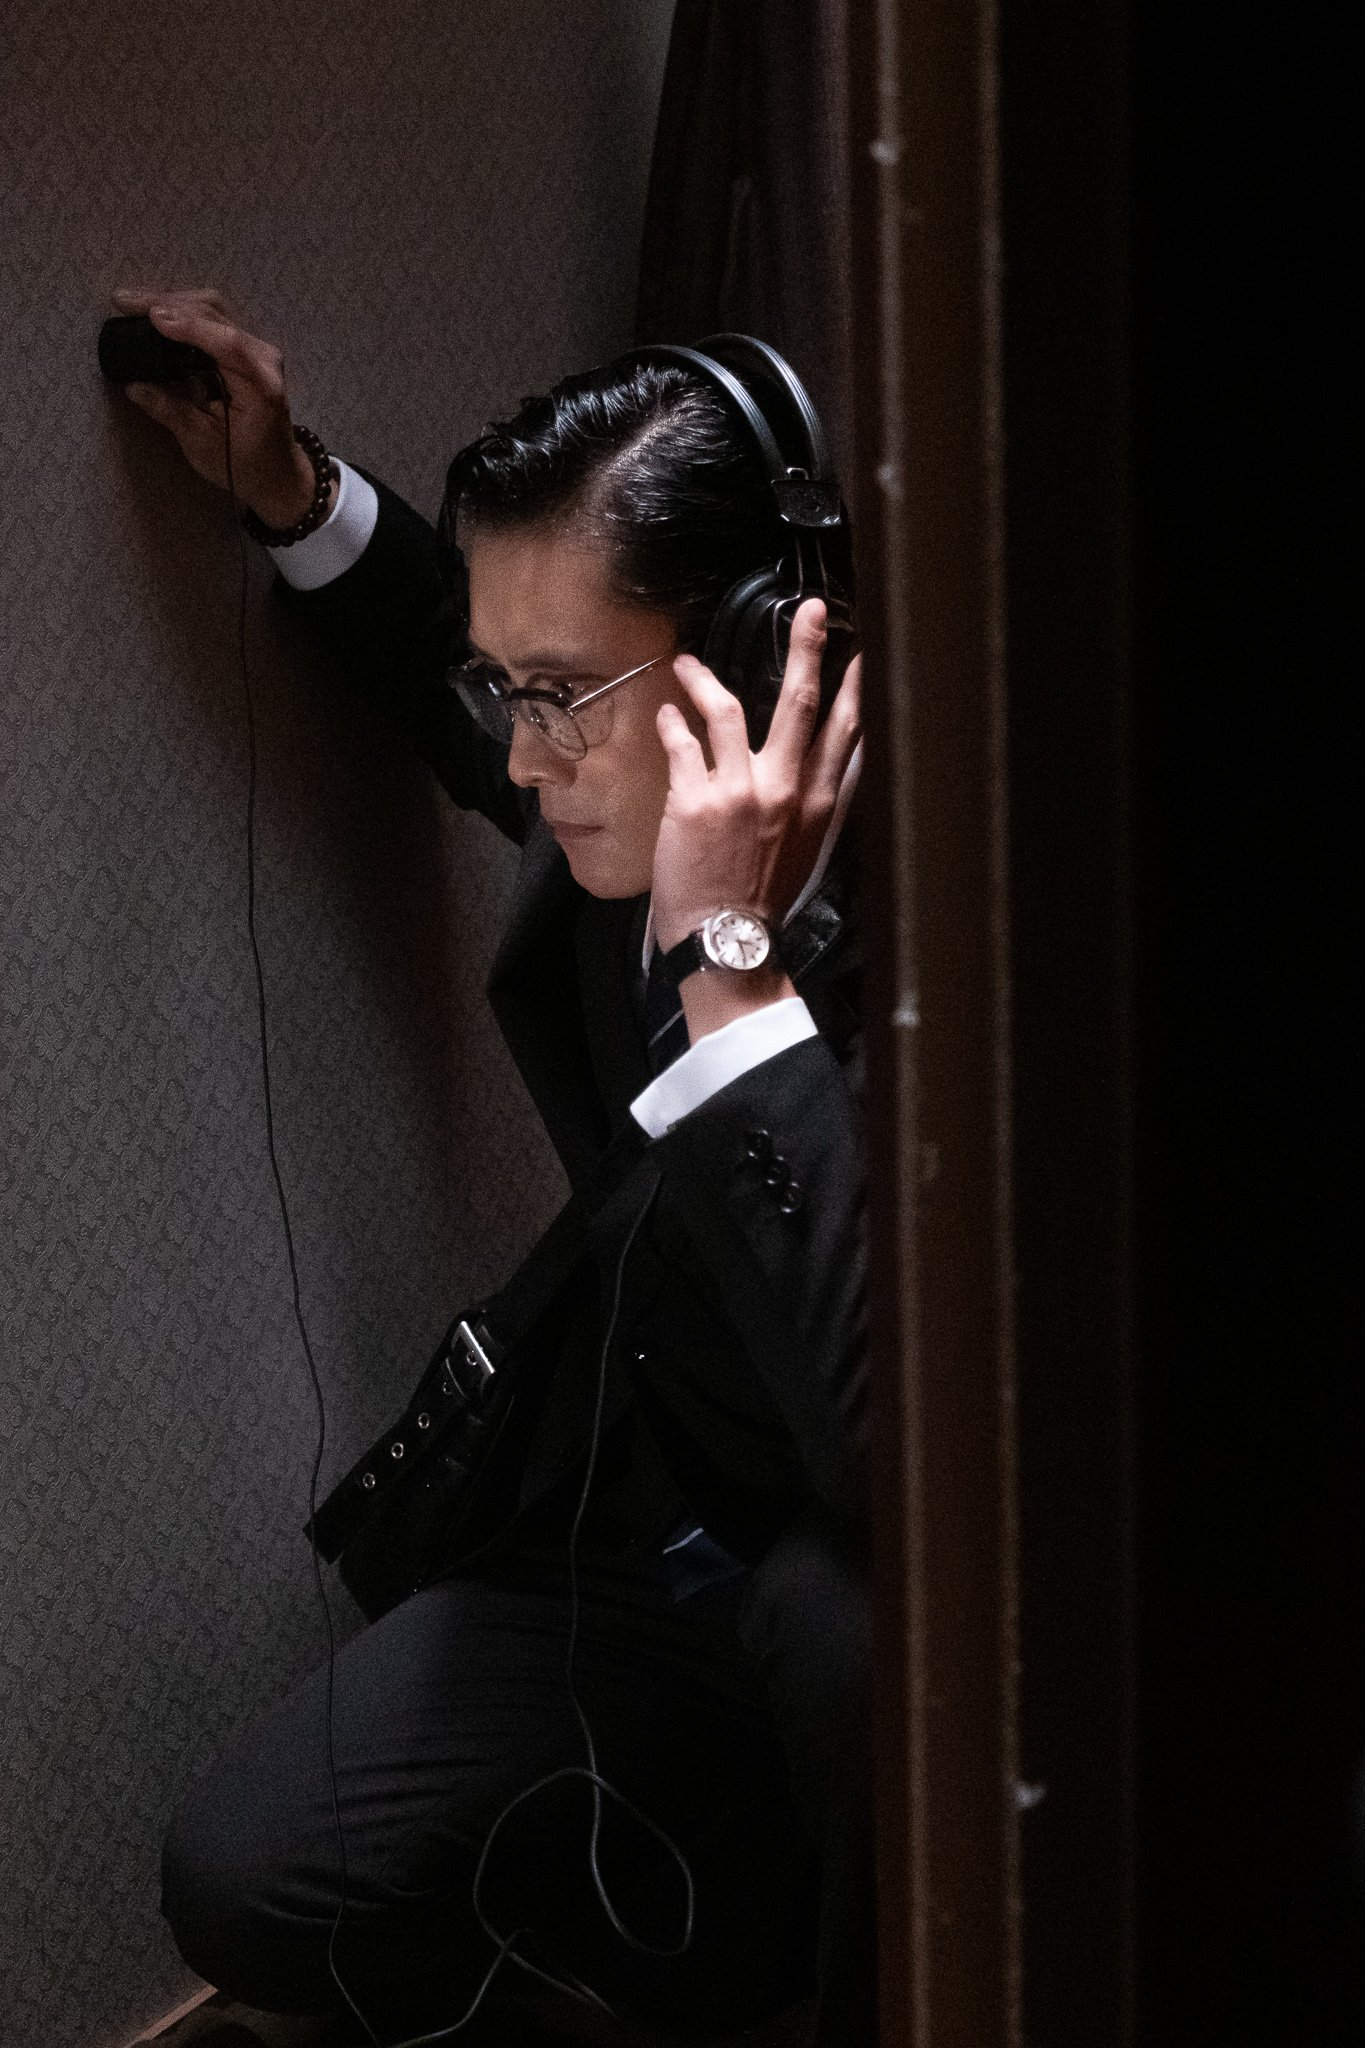 Lee Byung-hun in THE MAN STANDING NEXT (Blue Finch Film Releasing) (02)